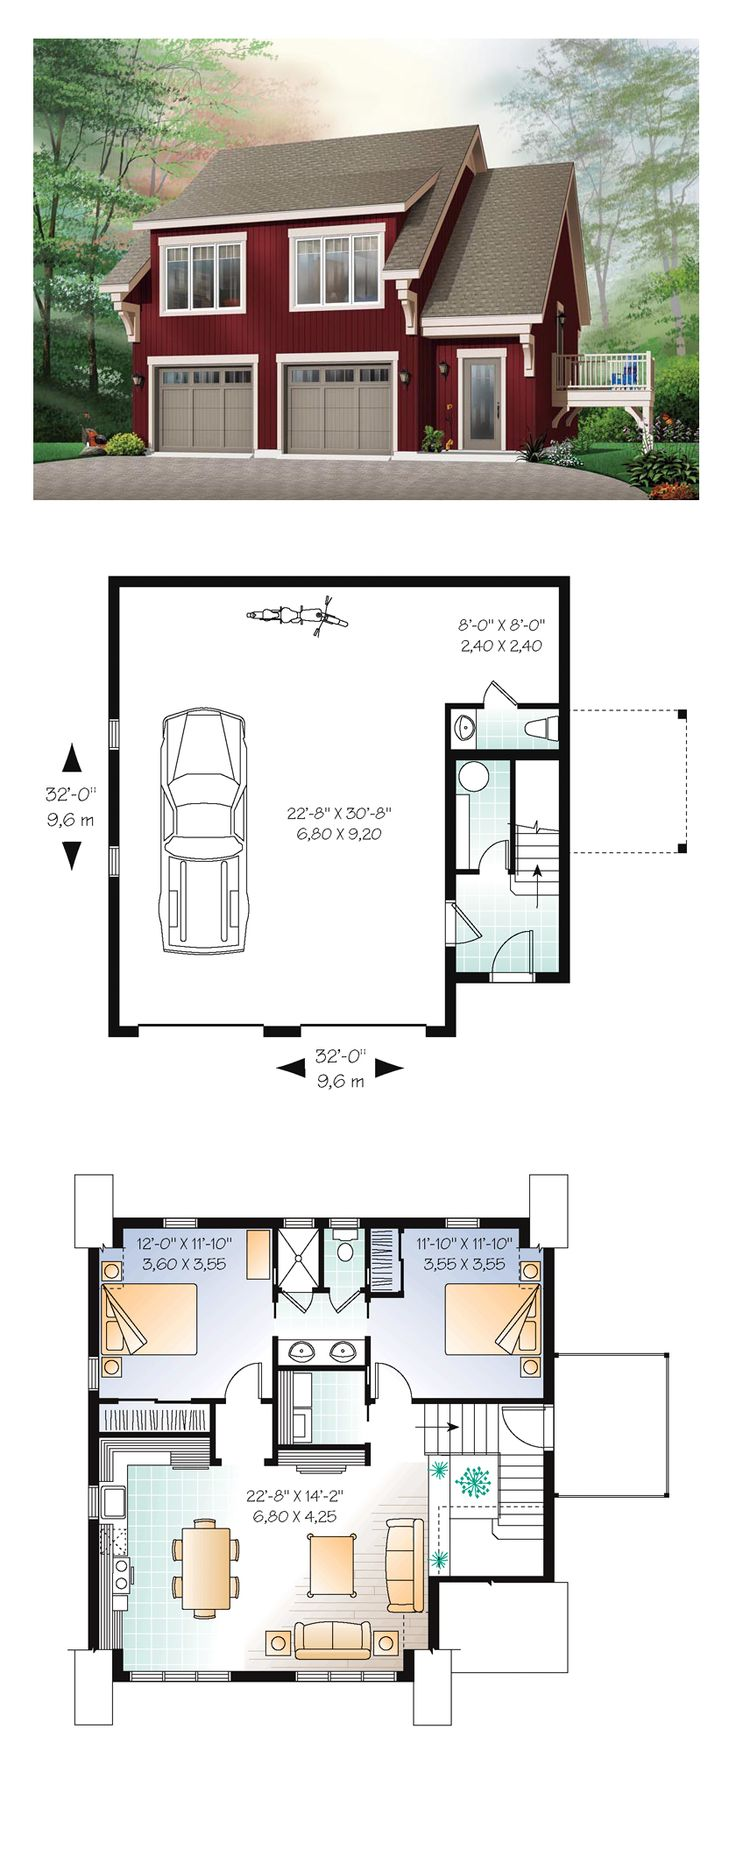 Garage Apartment Plan 64817 | Total Living Area: 1068 sq. ft., 2